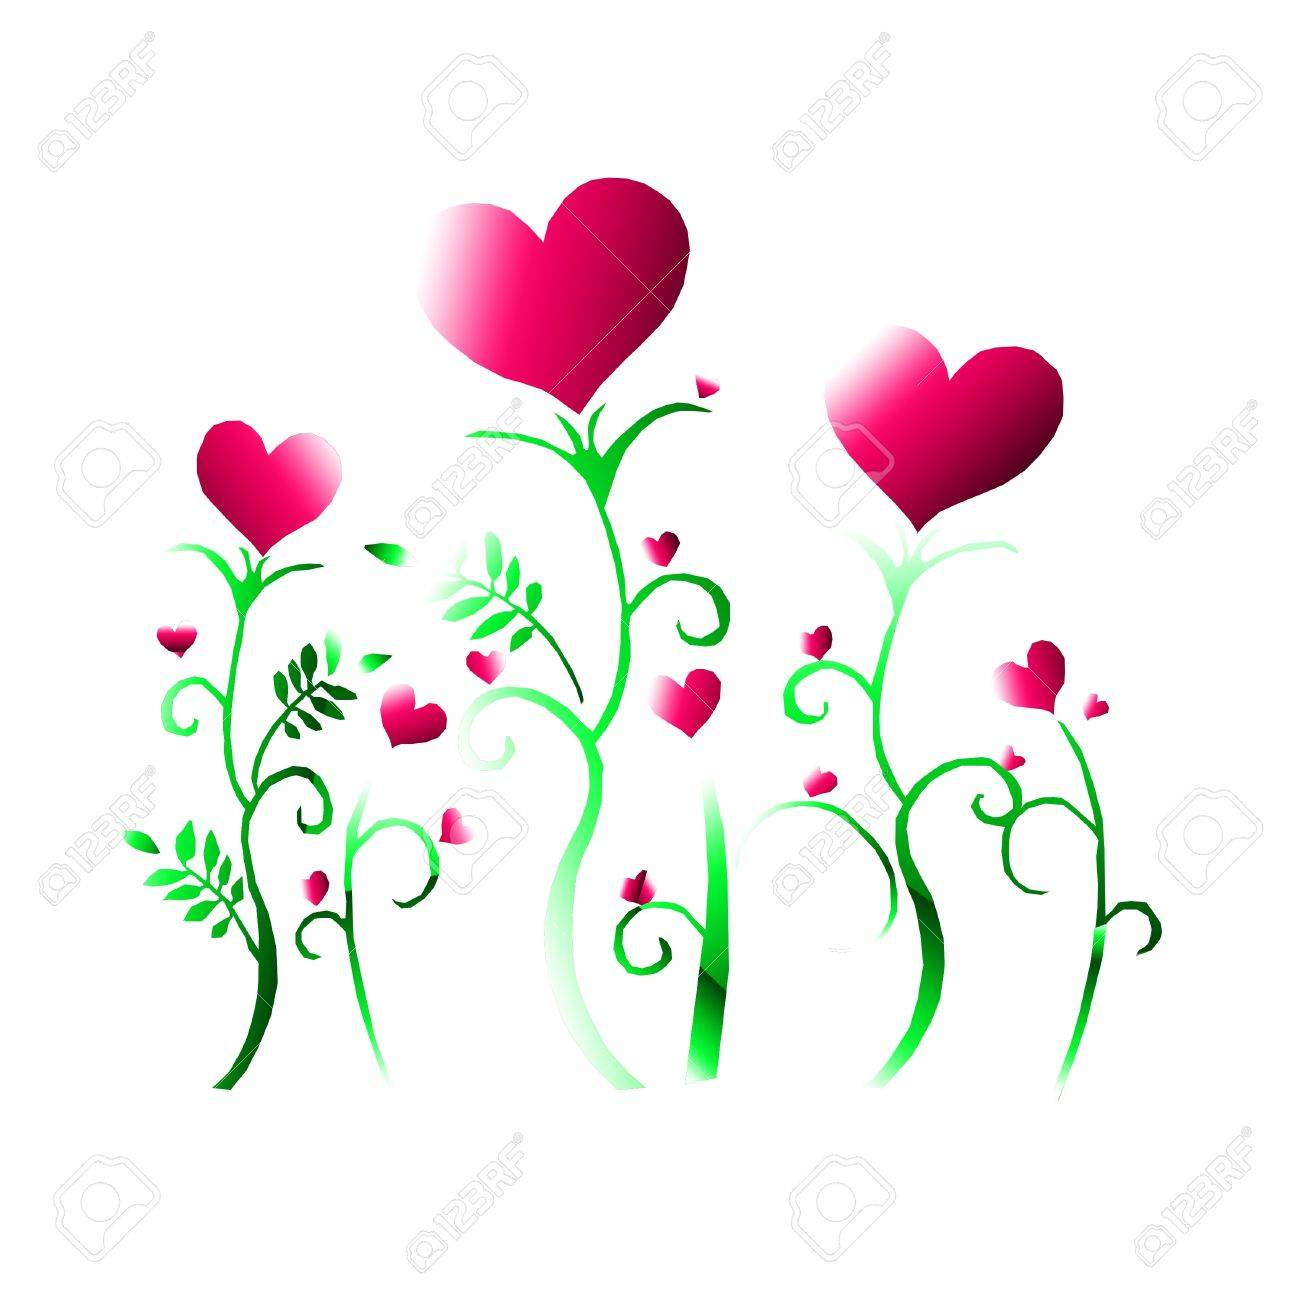 hearts and flowers Stock Photo - 8880374